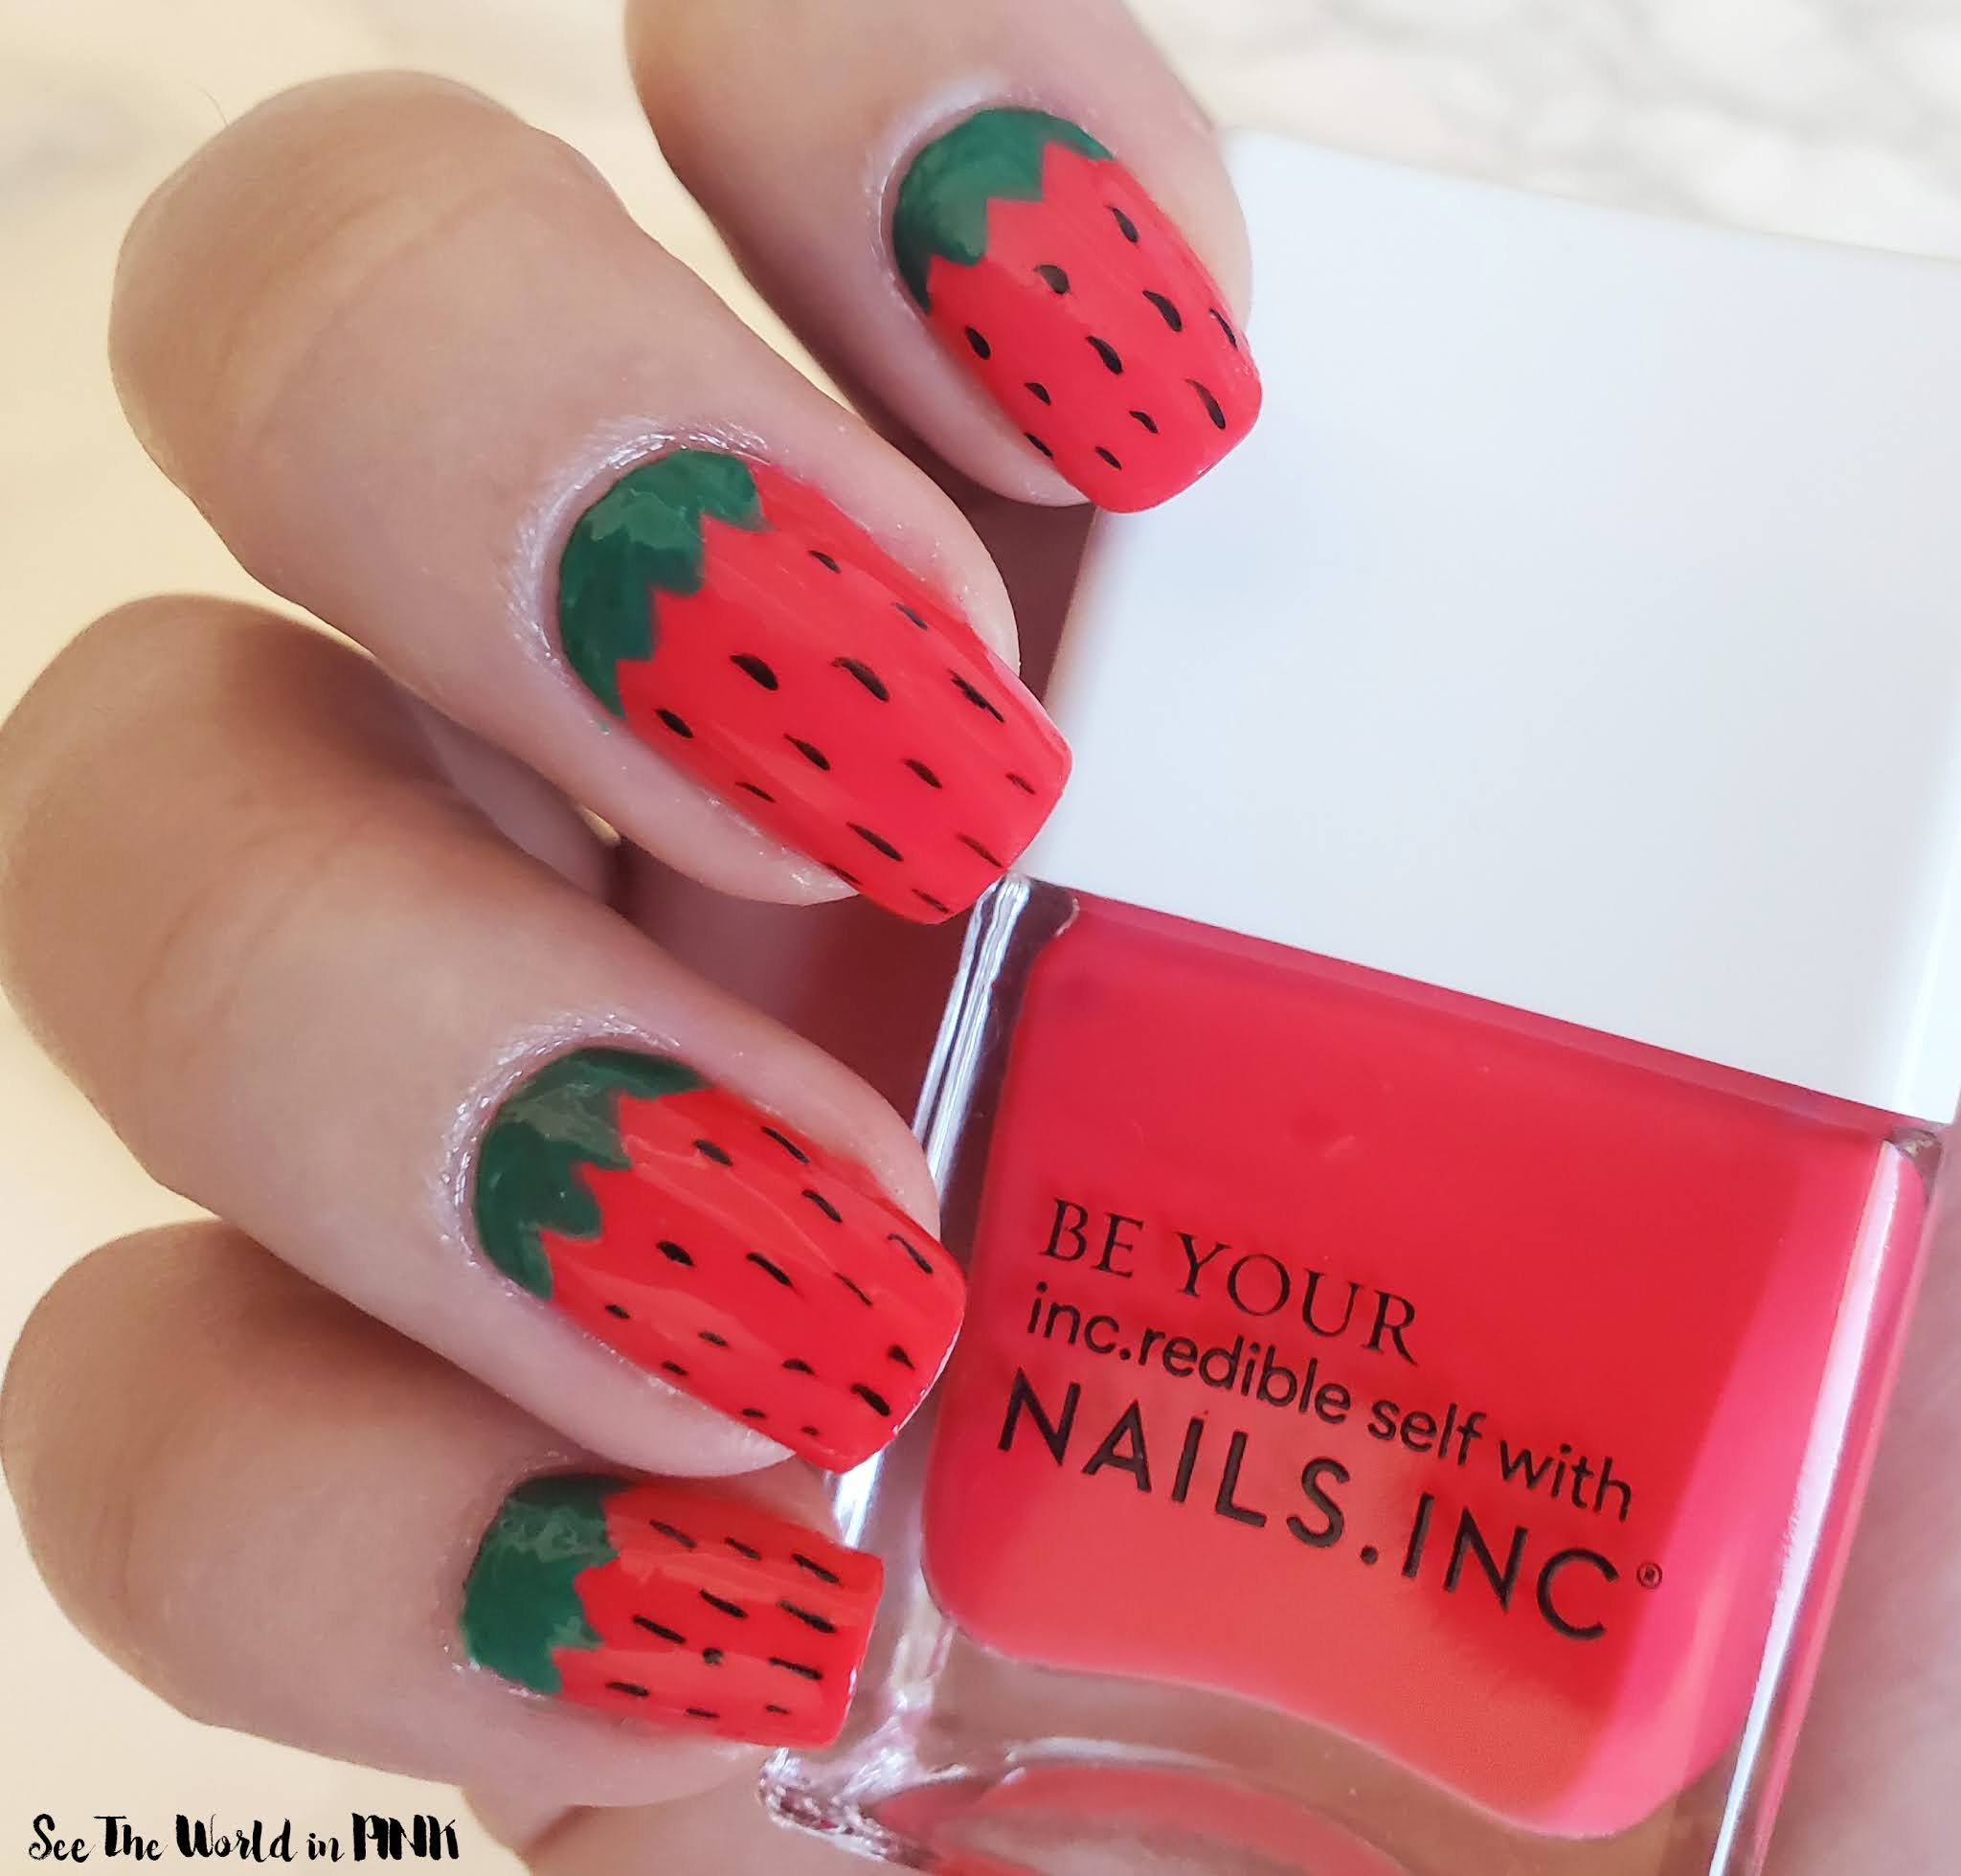 Manicure Monday - Strawberry Nails